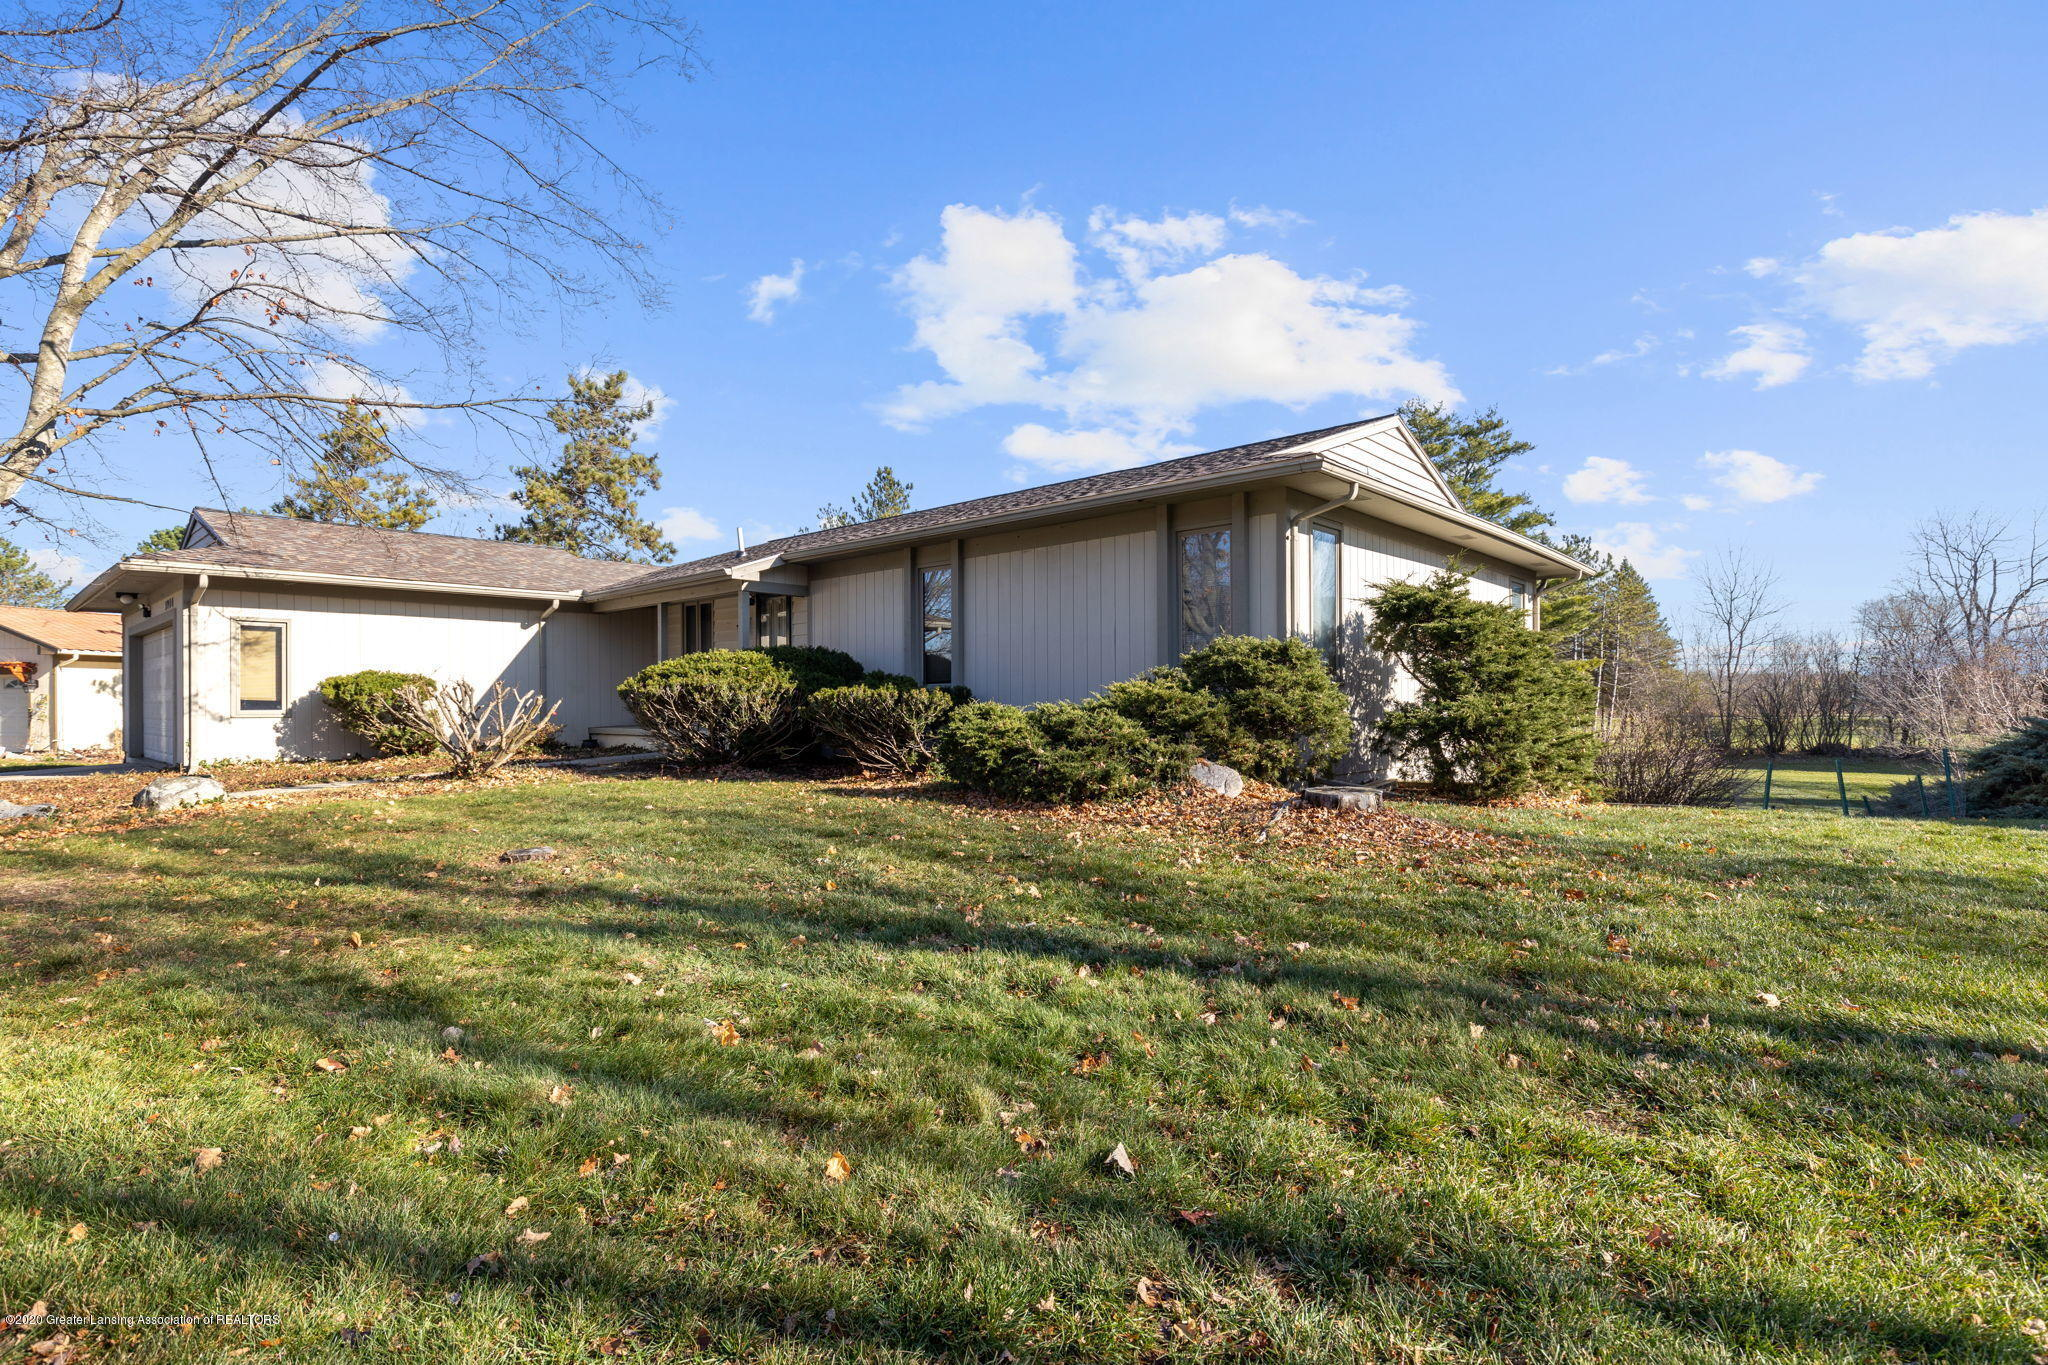 3944 Jonquil Ln - Side View - 33